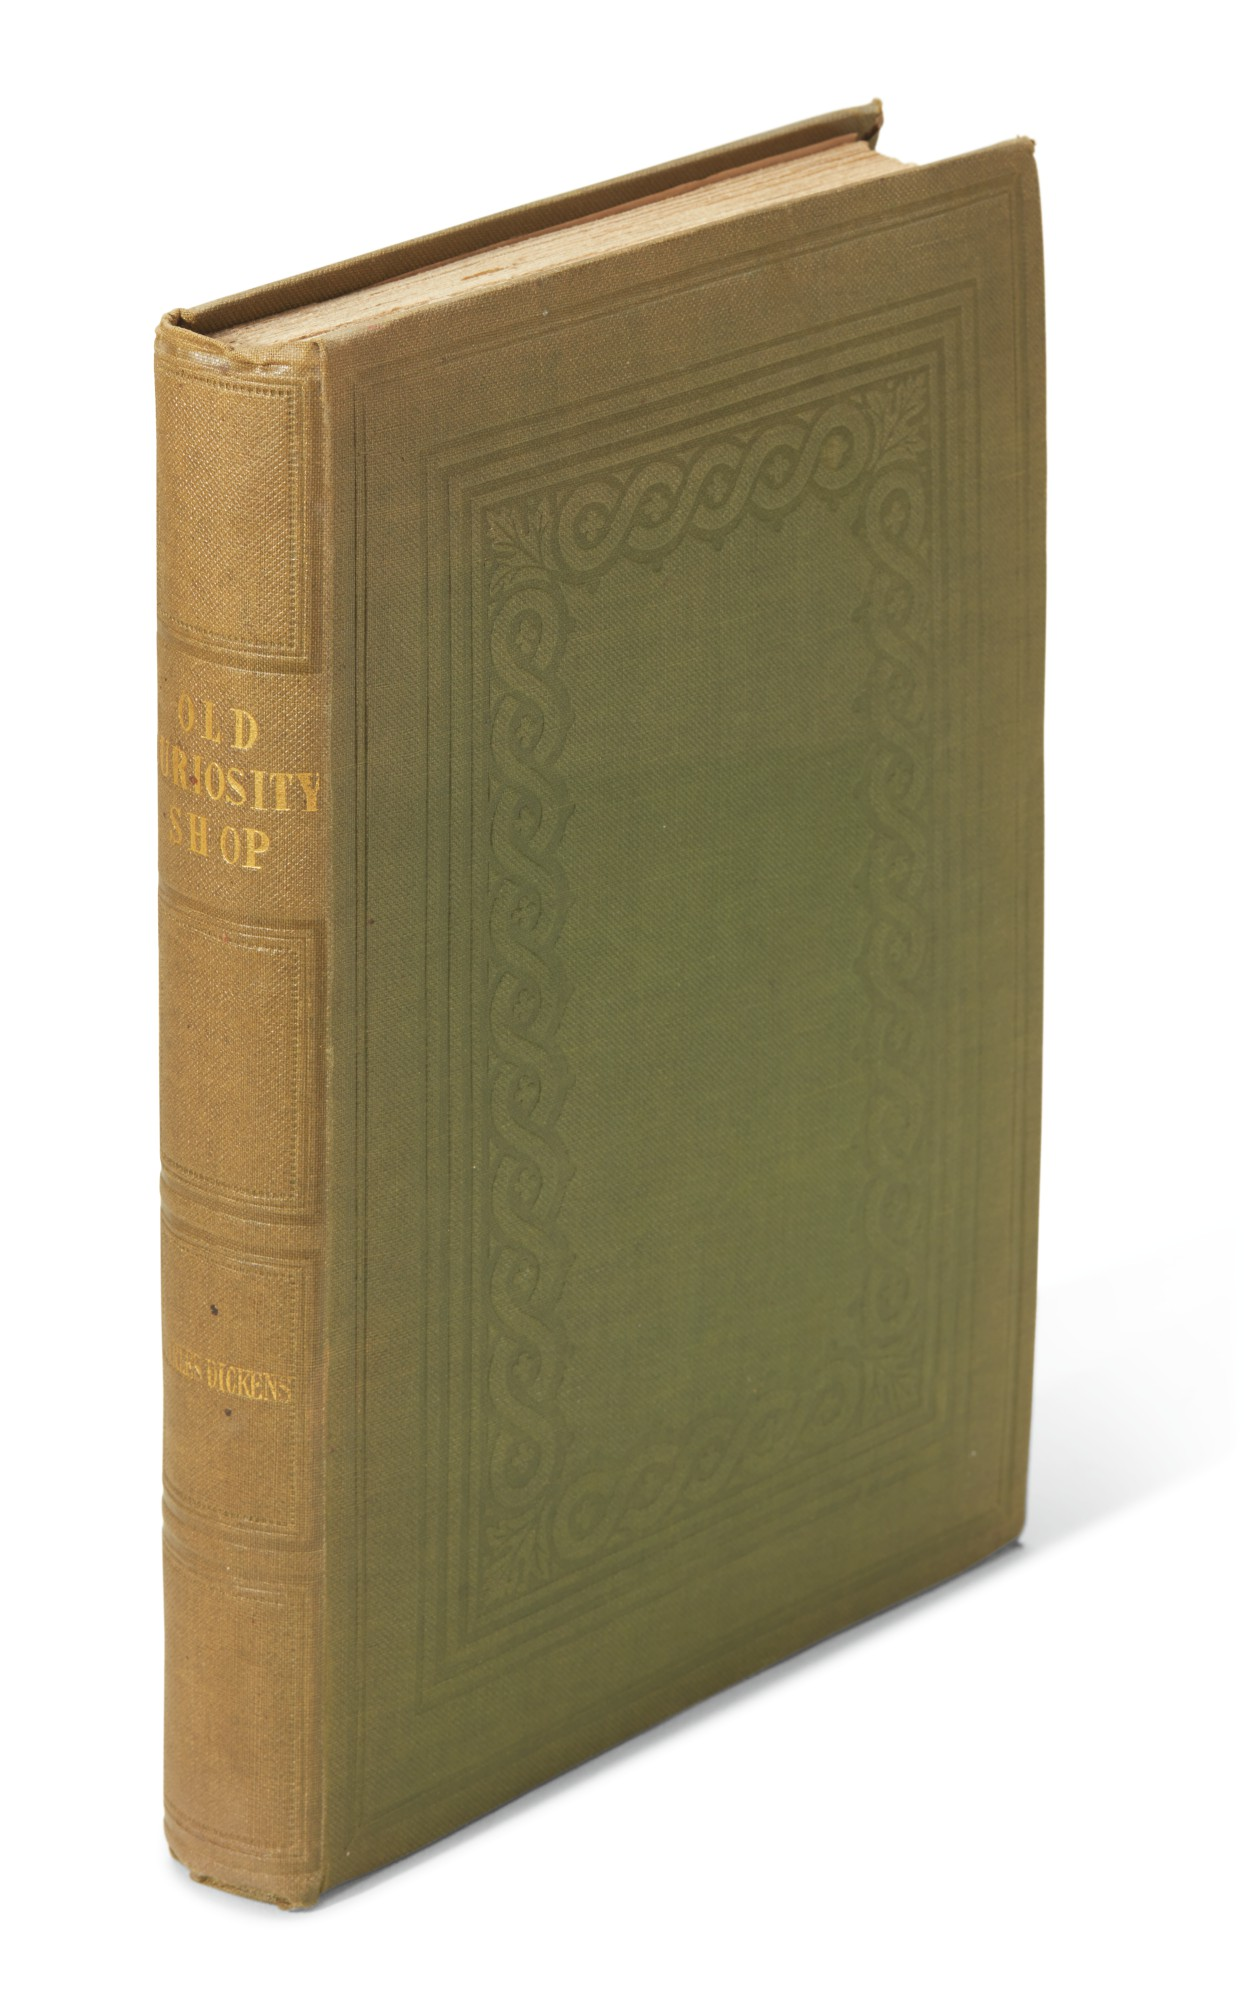 Dickens, The Old Curiosity Shop, 1841, first separate edition, bound from the weekly parts, binding variant